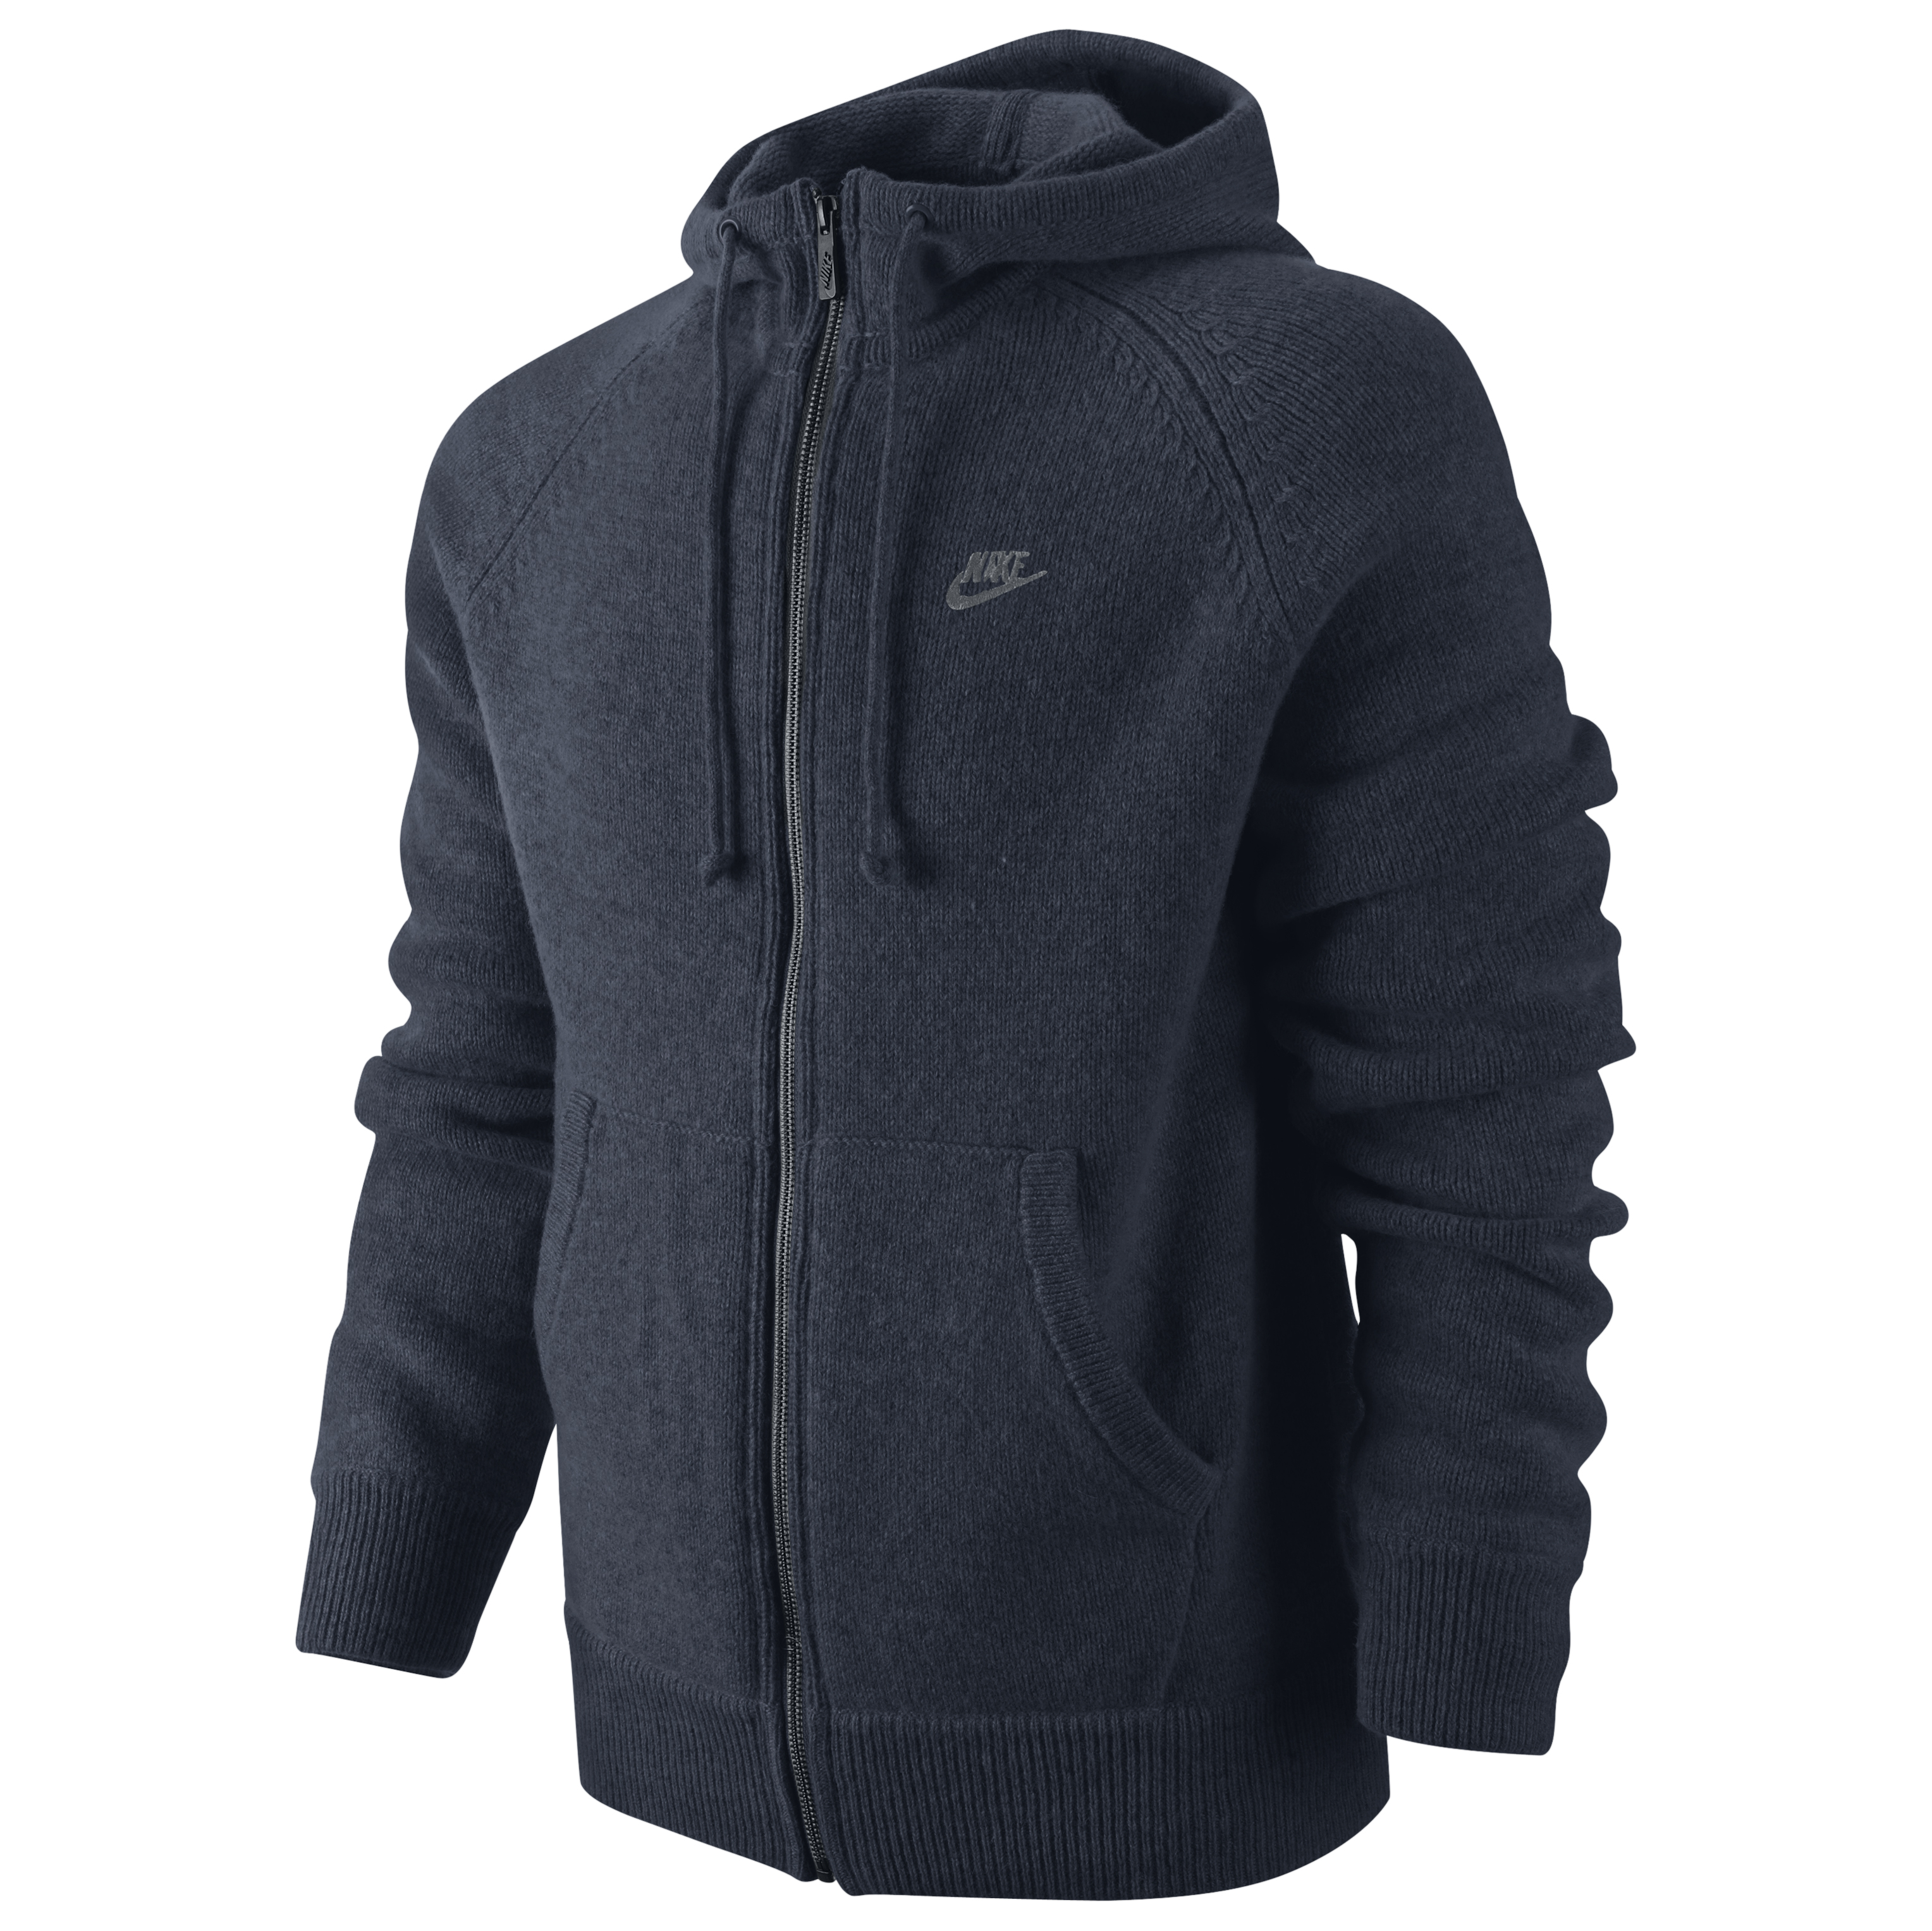 Nike Sportswear CR7 AW77 Hoody - Obsidian Heather/Dark Grey